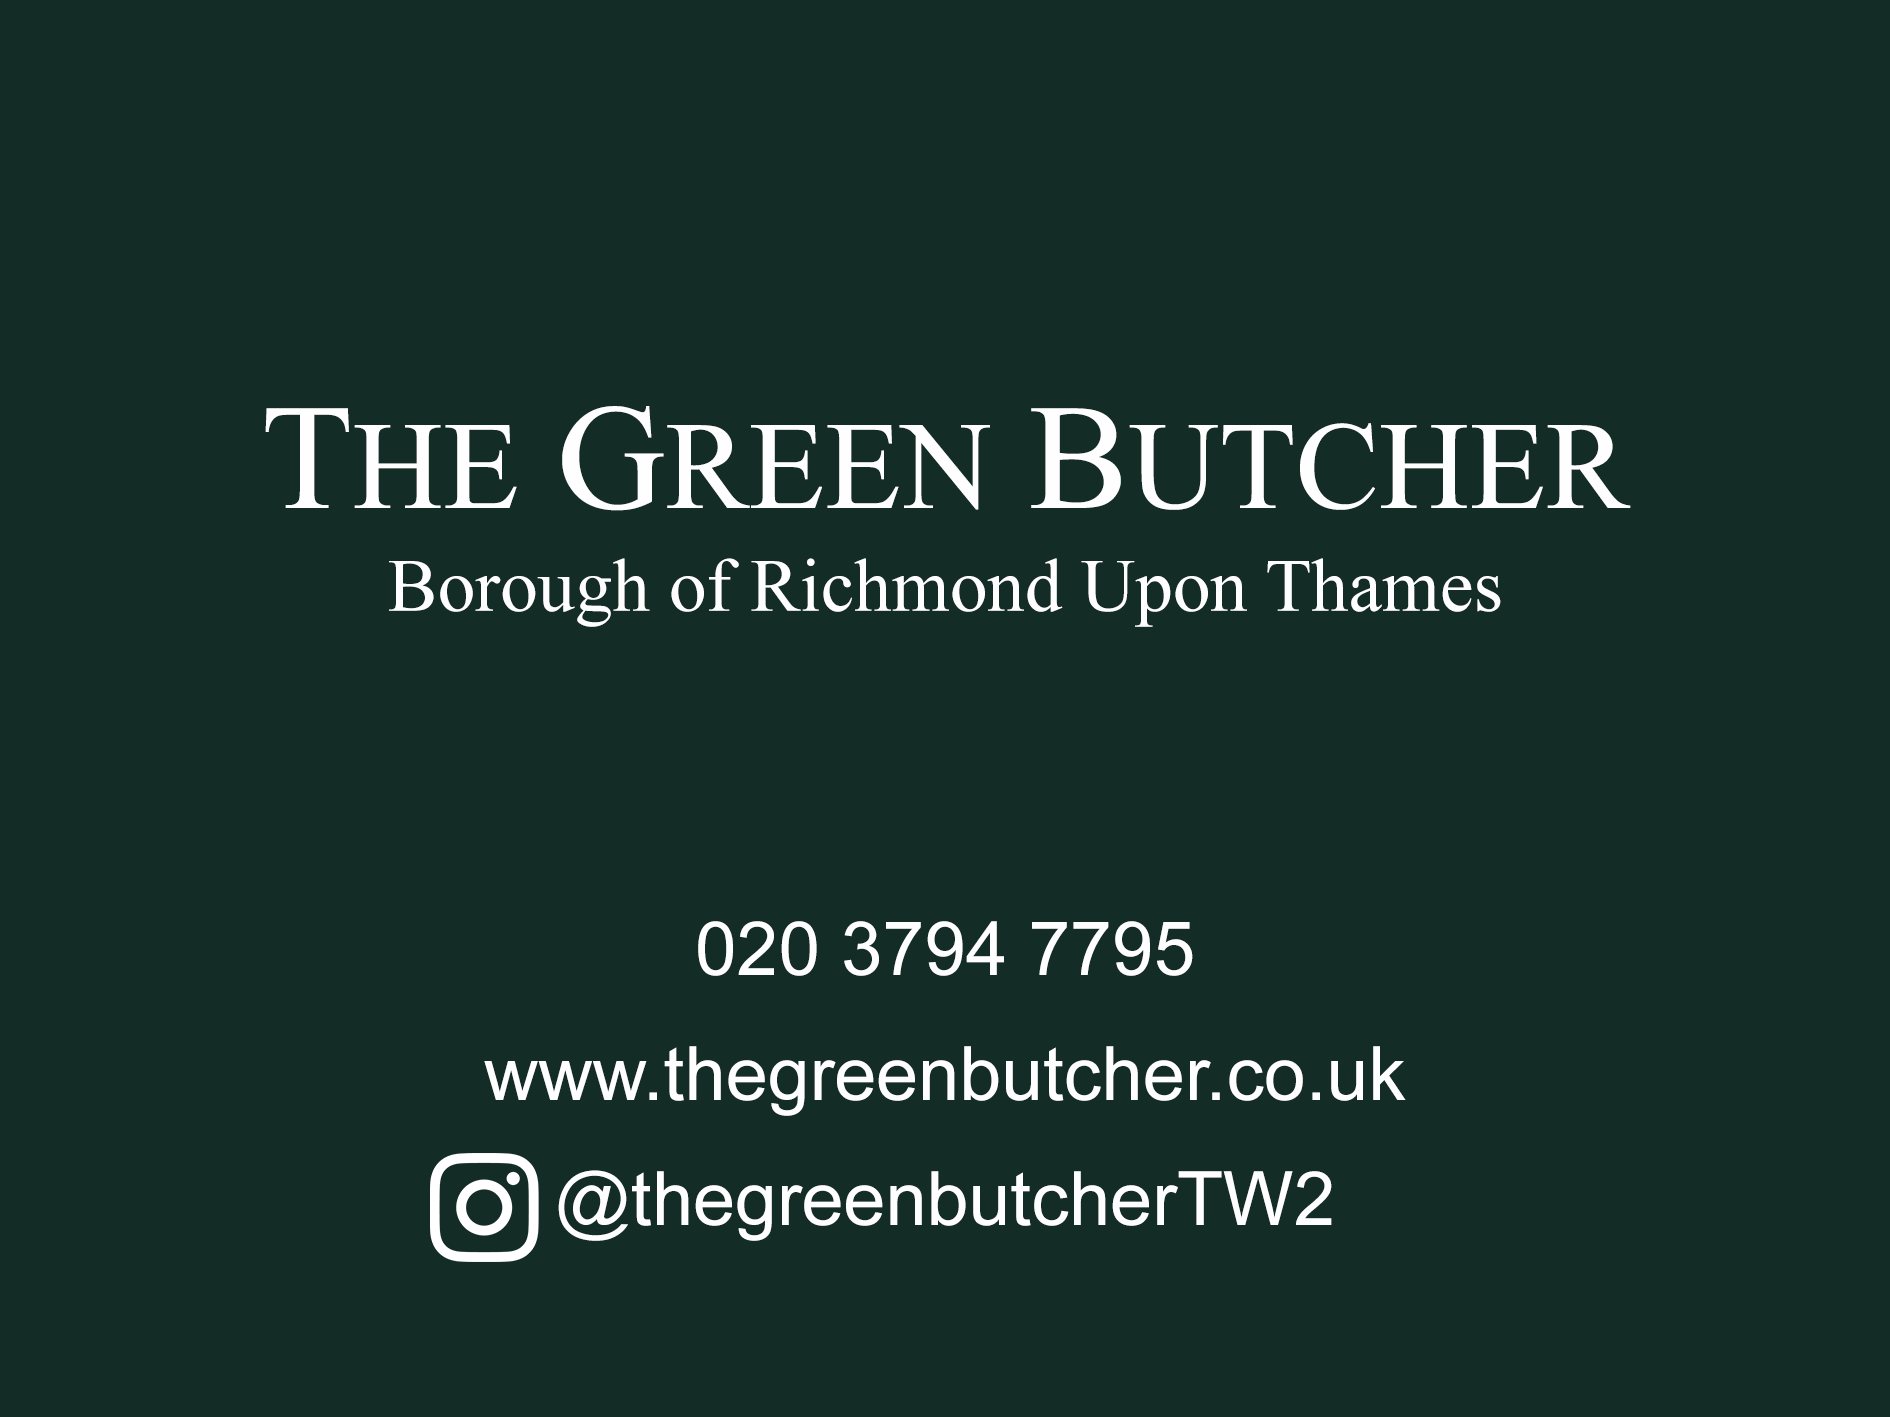 The Green Butcher